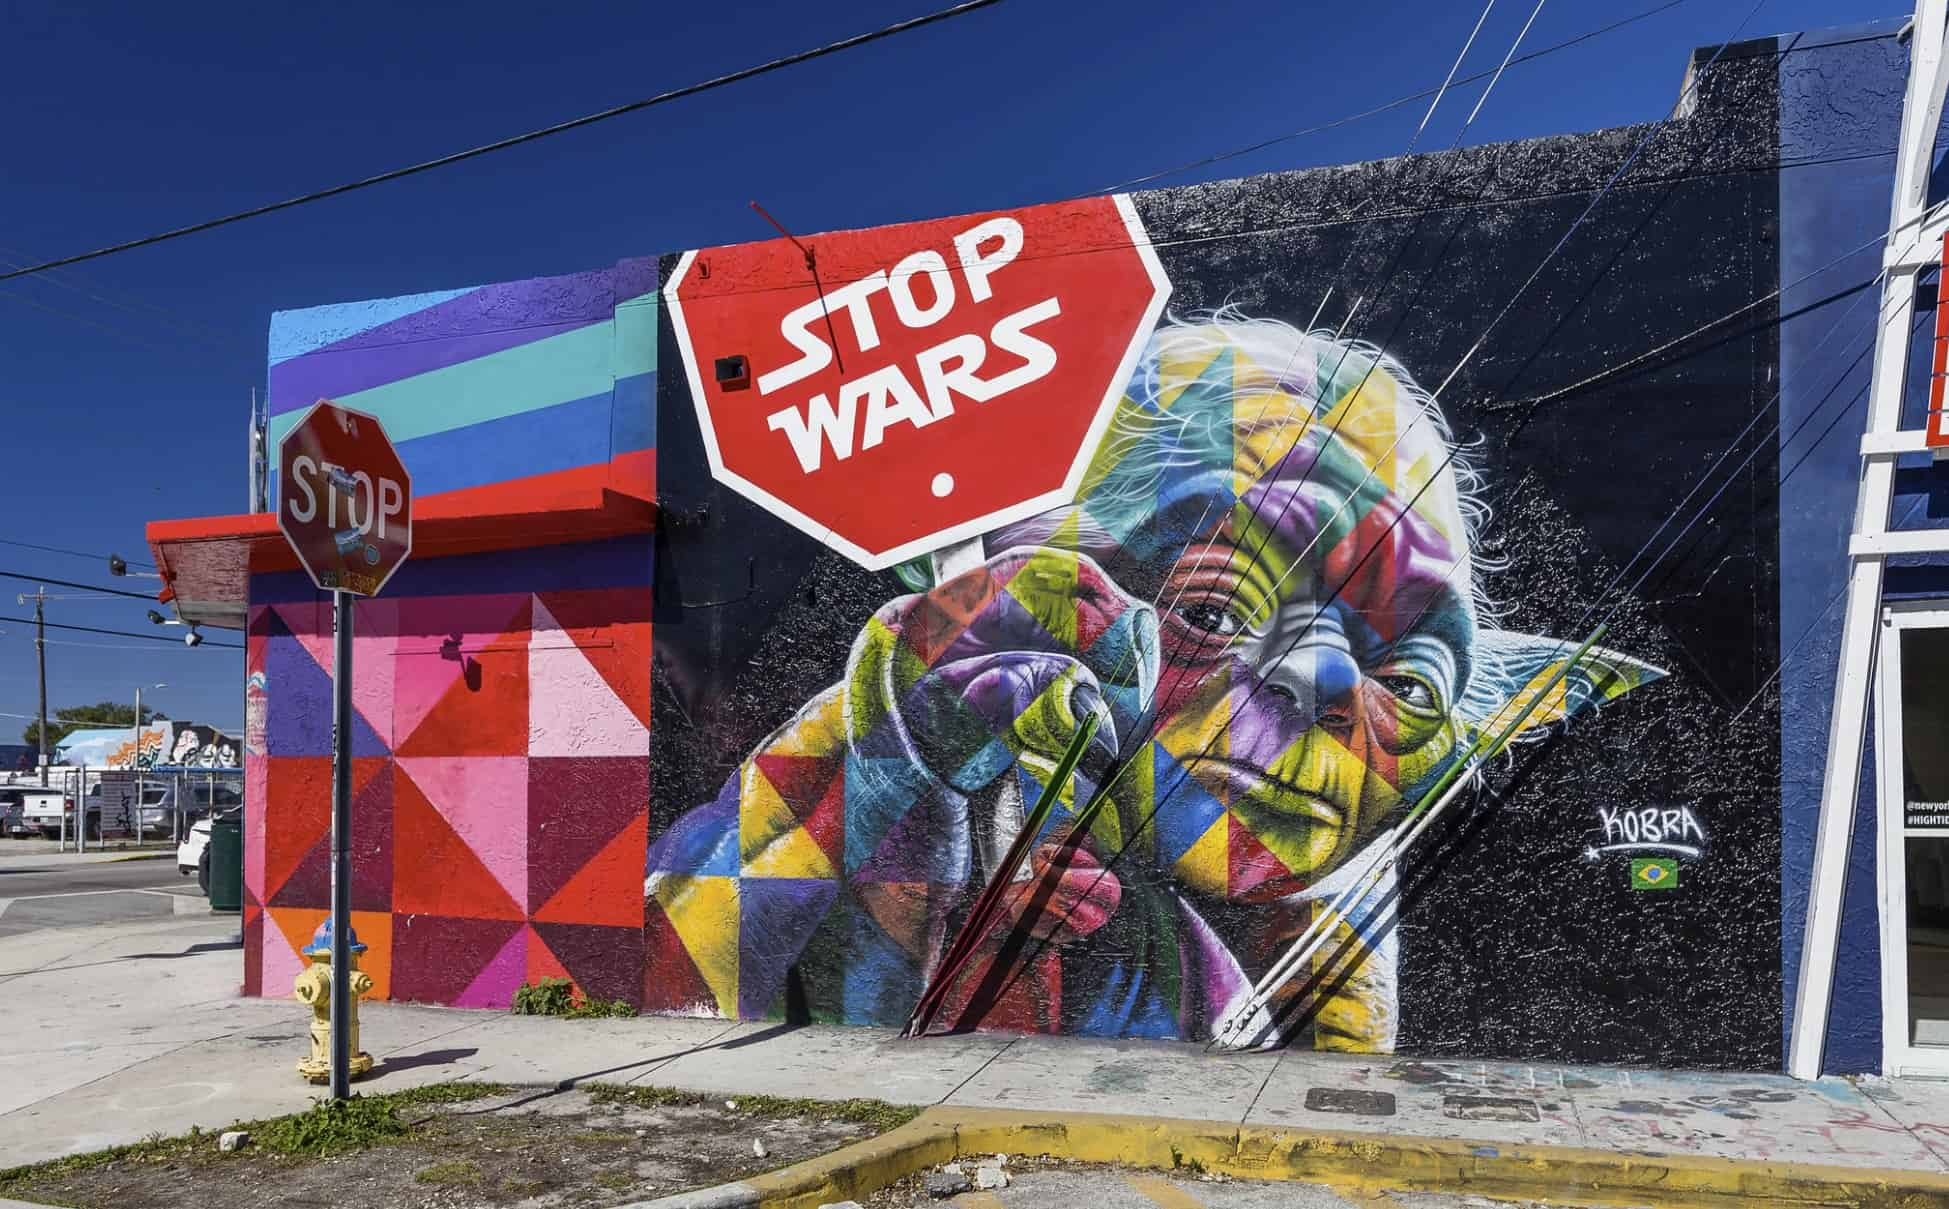 stop wars (Miami, United States 2018) art by Eduardo Kobra